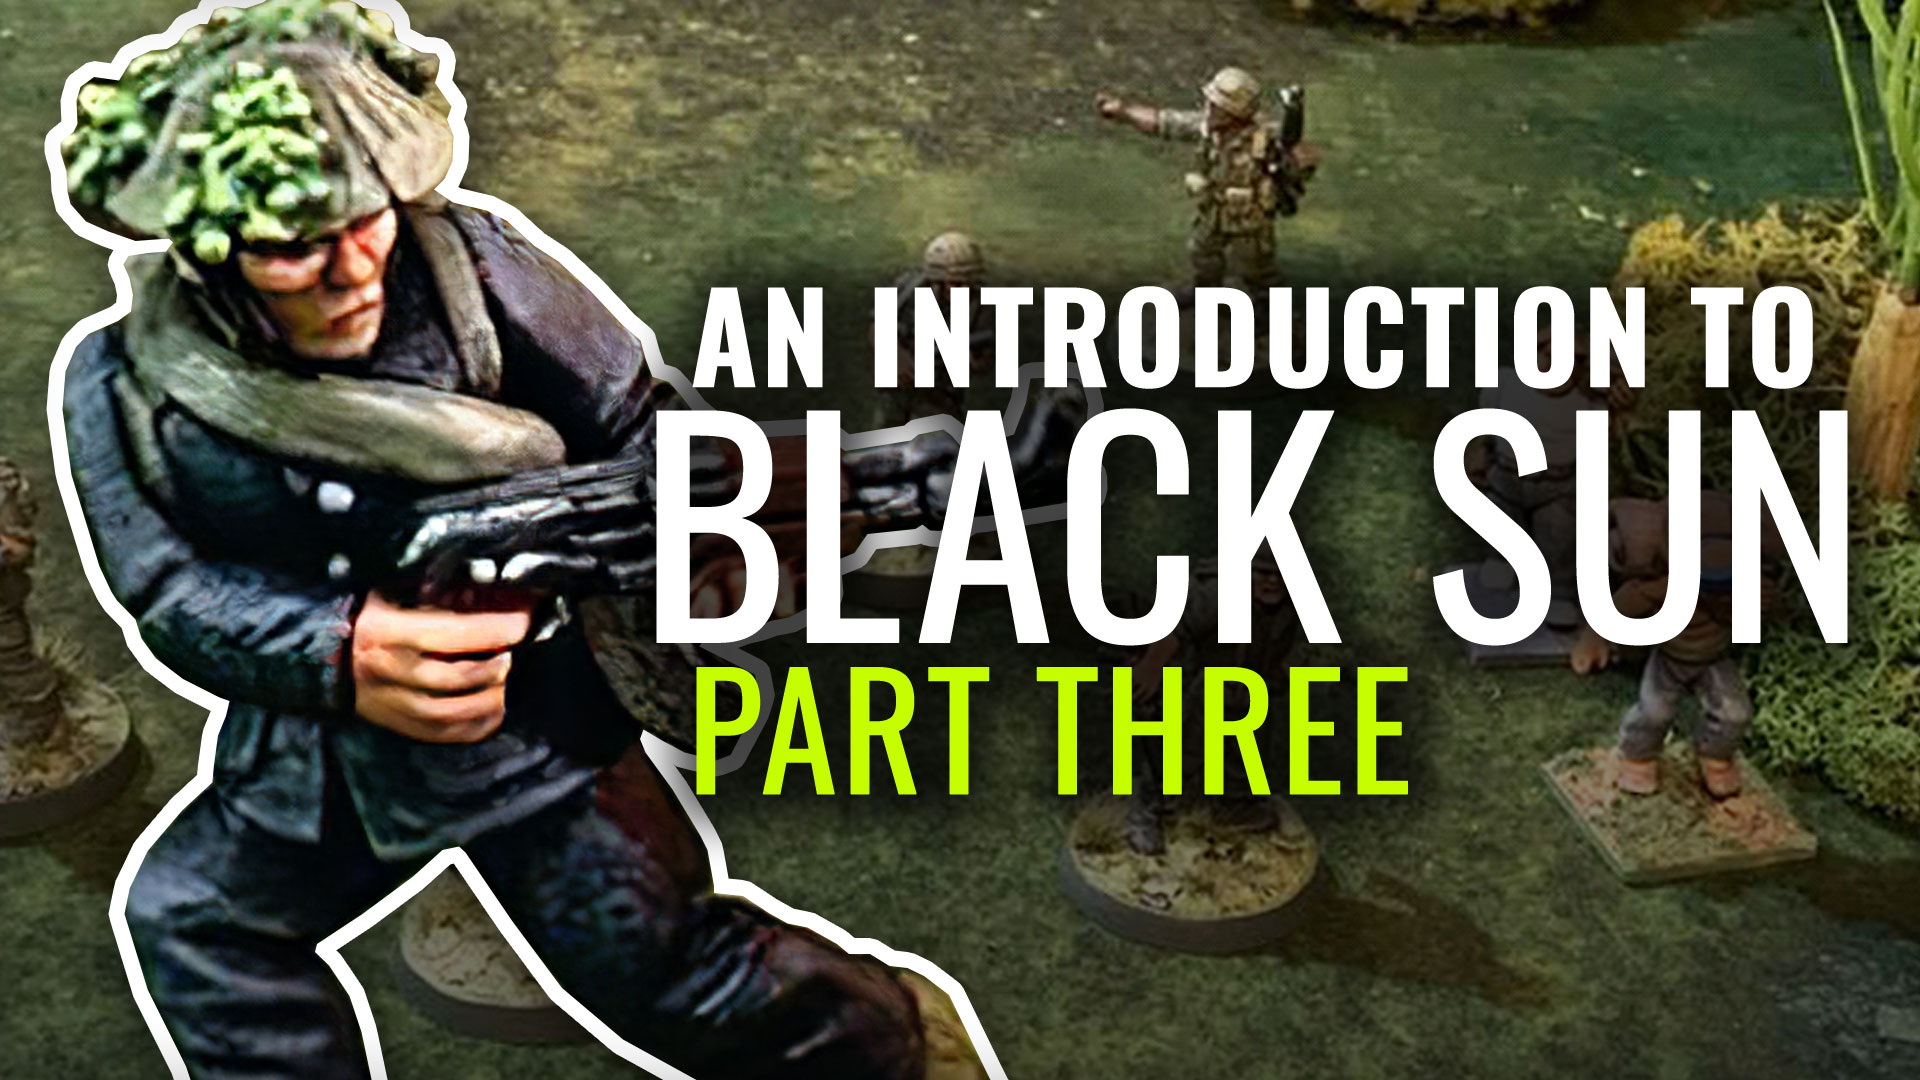 https://www.beastsofwar.com/featured/introduction-black-sun-part-three-rules/